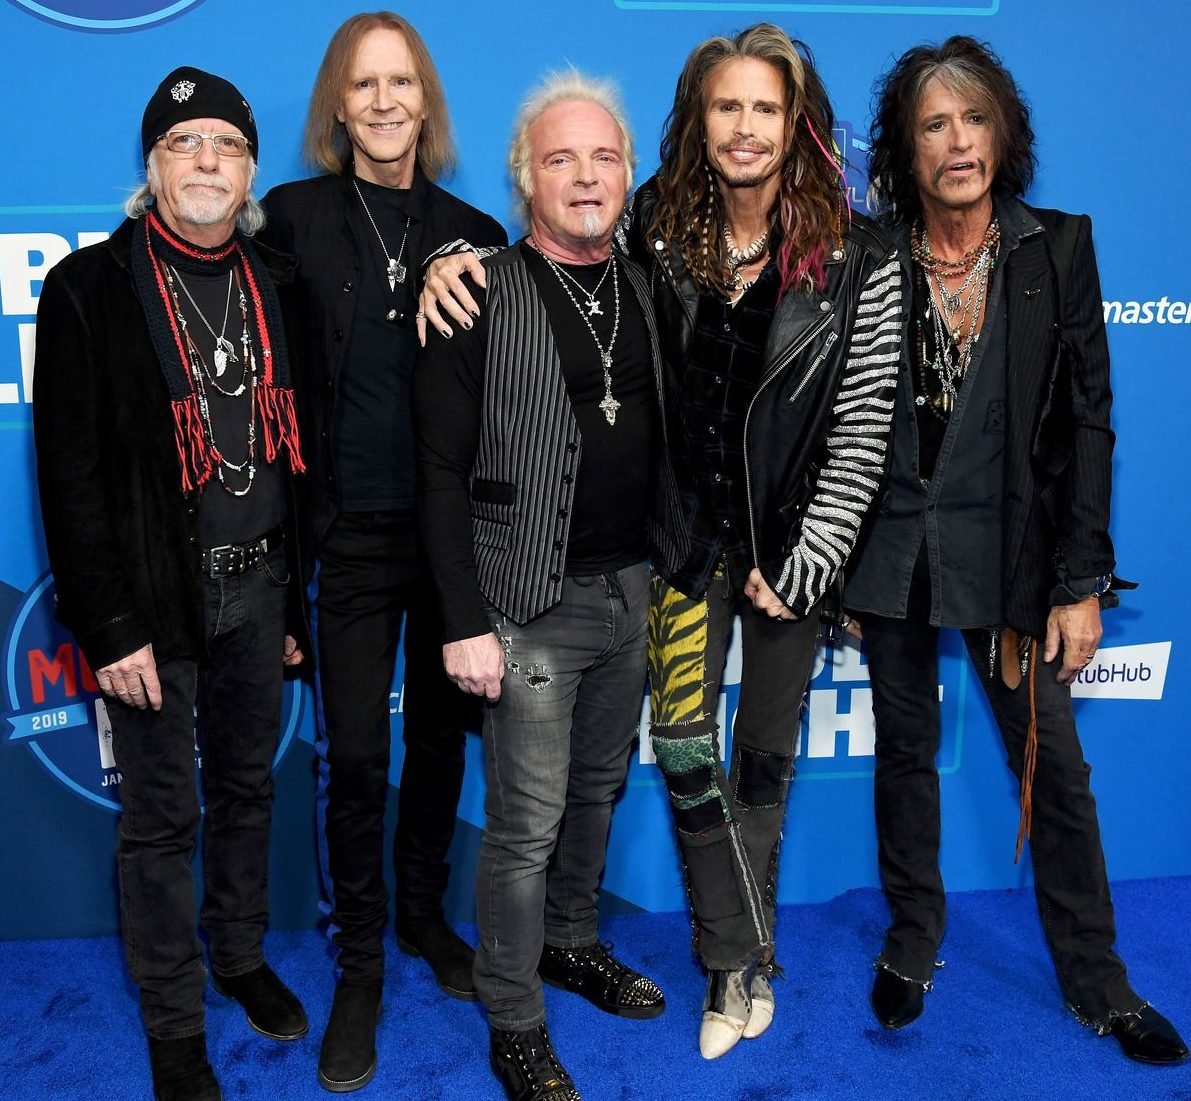 d6961b94c7fc178e4ff62bc922396616a1 22 joey kramer aerosmith.rsquare.w1200 e1605093951864 Tonight We're Gonna Rock You With 30 Facts About This Is Spinal Tap!